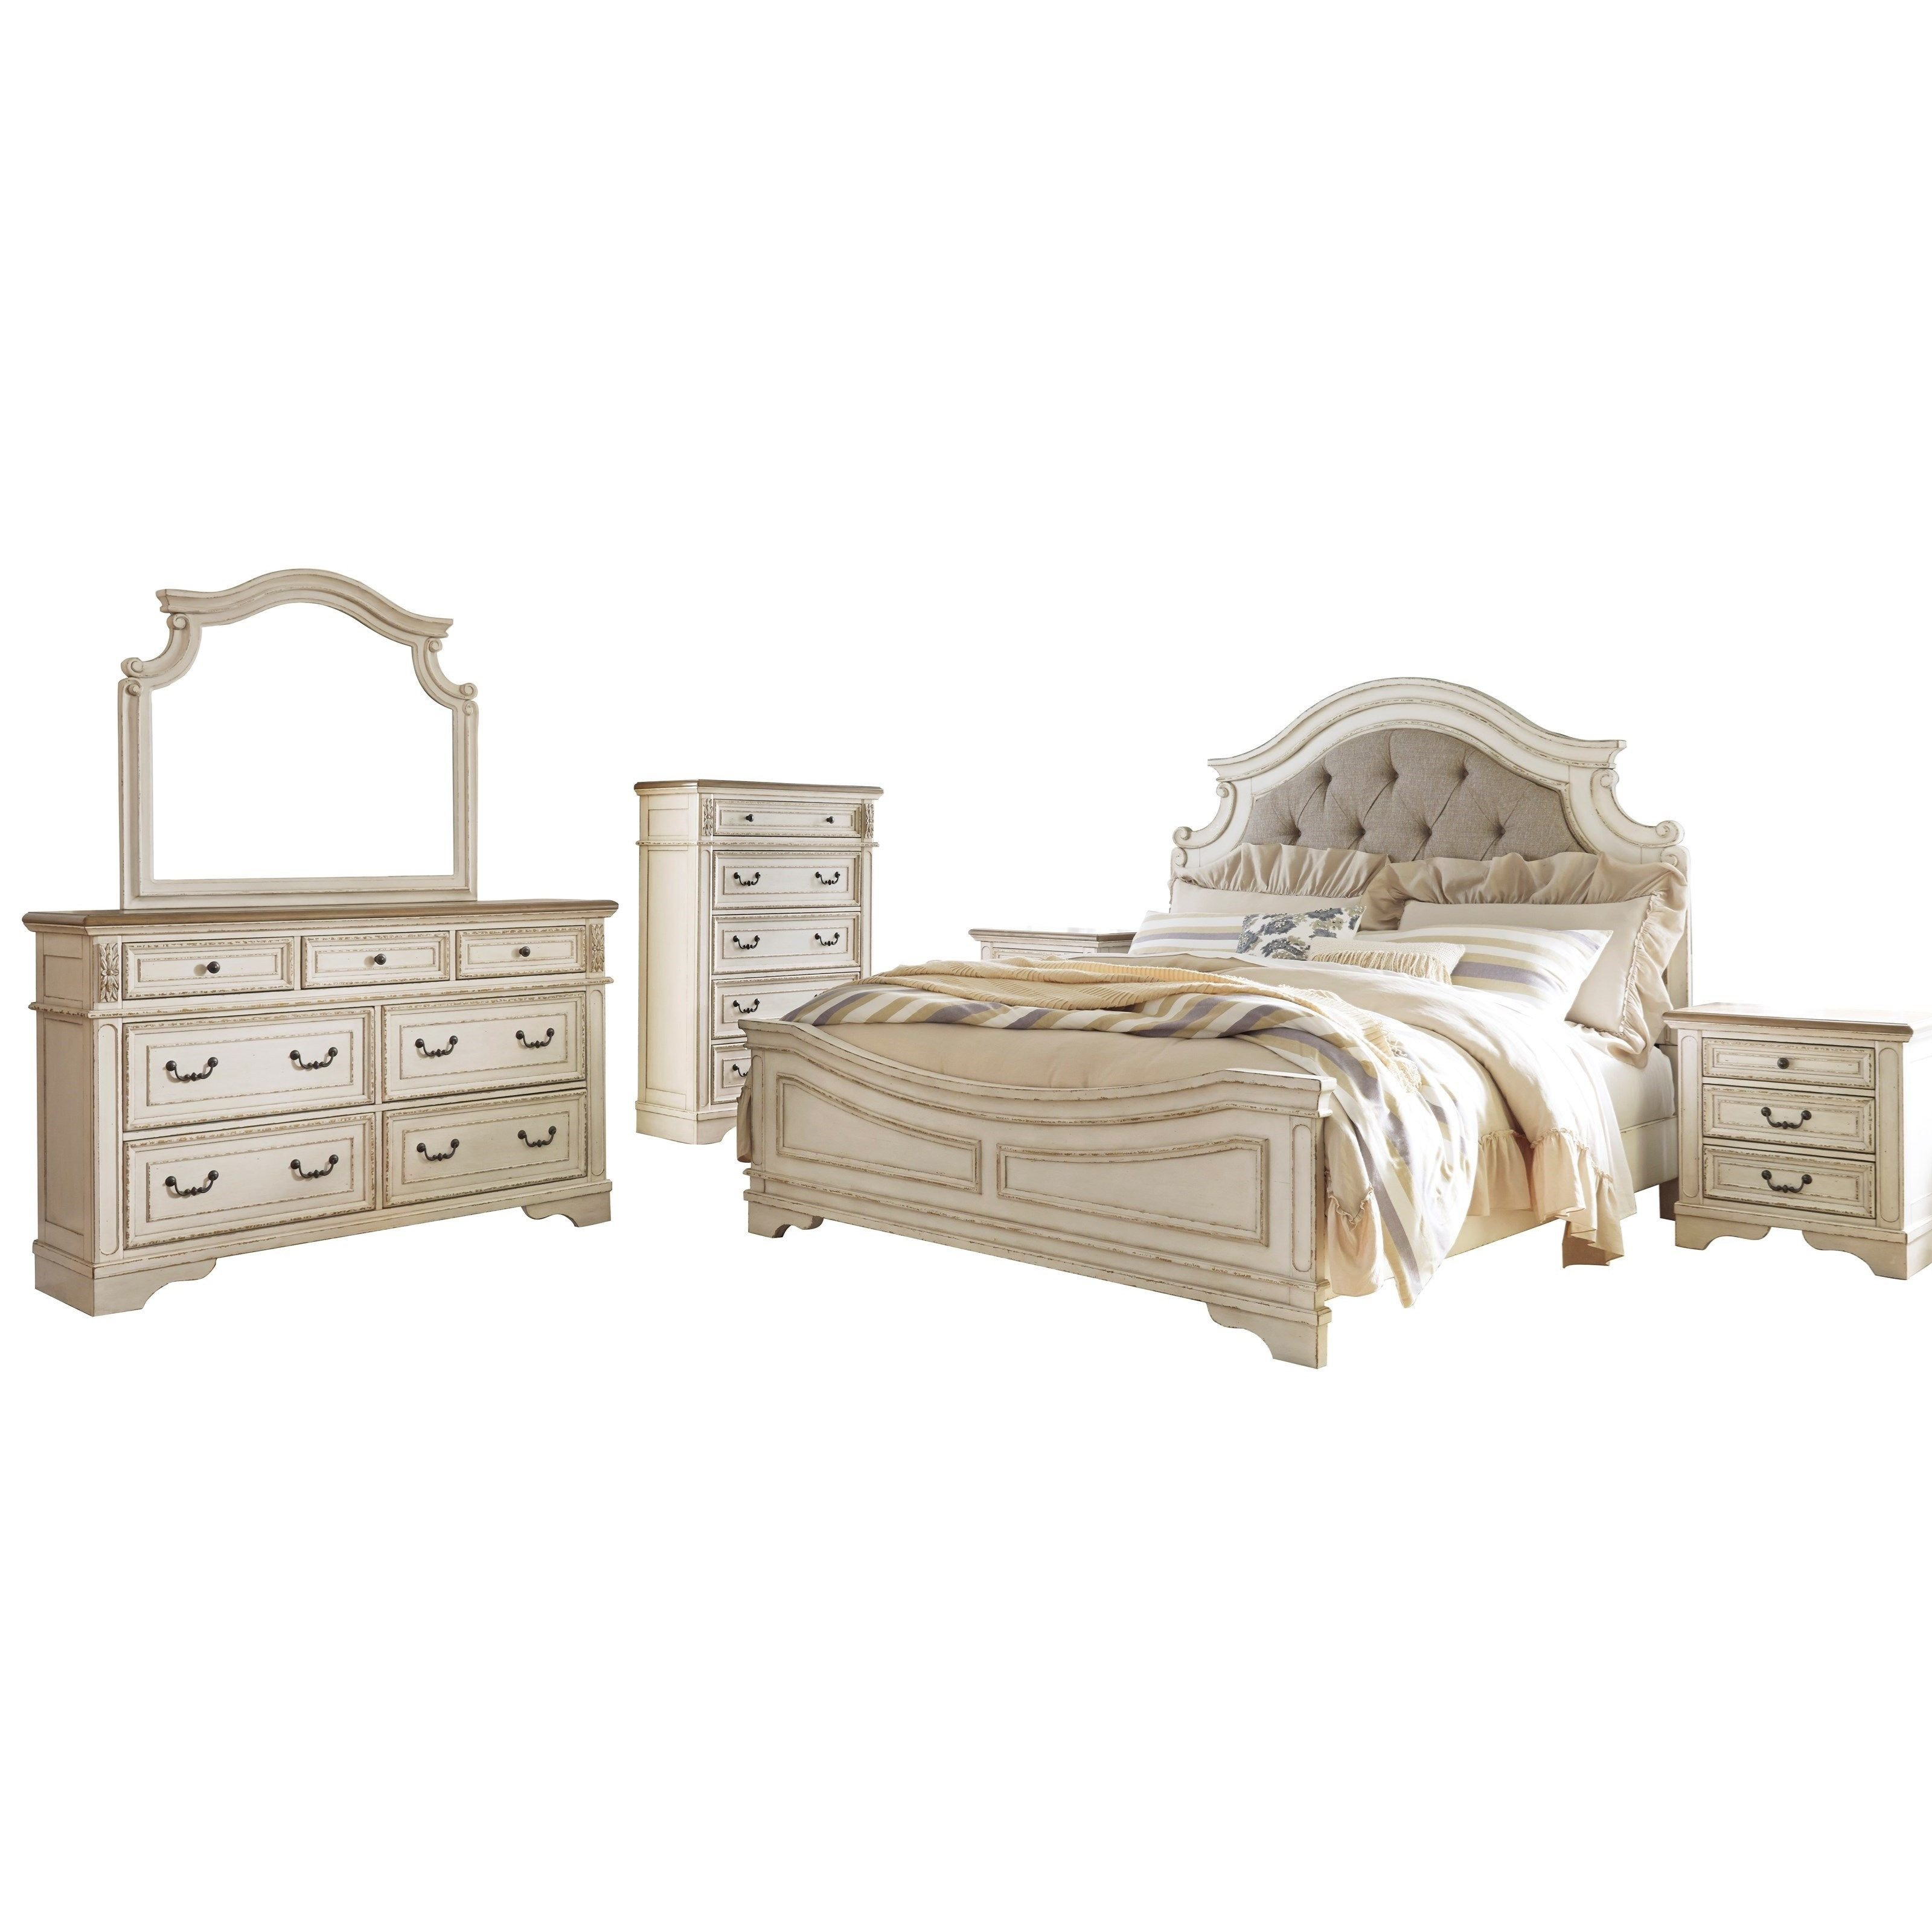 Ashley Furniture Silver Bedroom Set New Realyn Queen Bedroom Group by Signature Design by ashley In